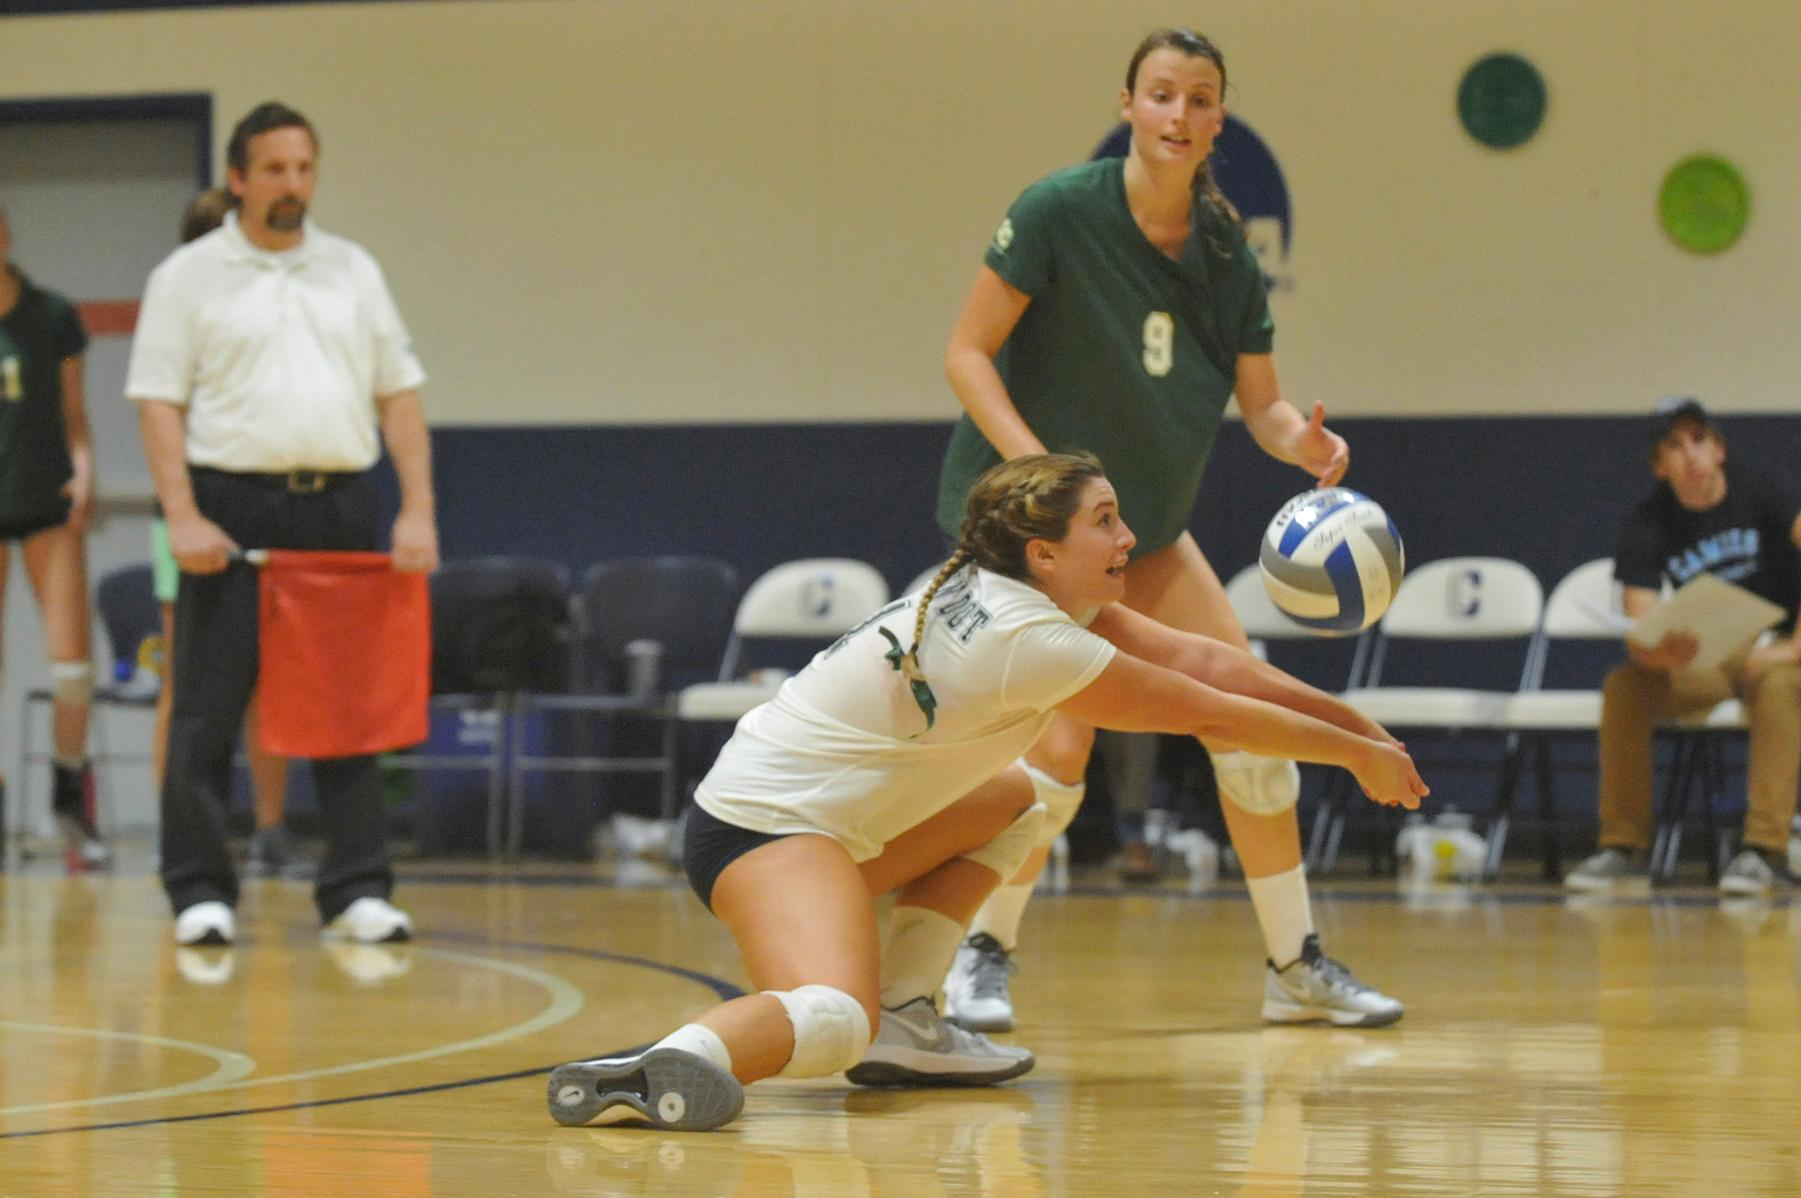 Bowdoin College 3, Connecticut College 0 Johnson Buries 10 Kills for Camels